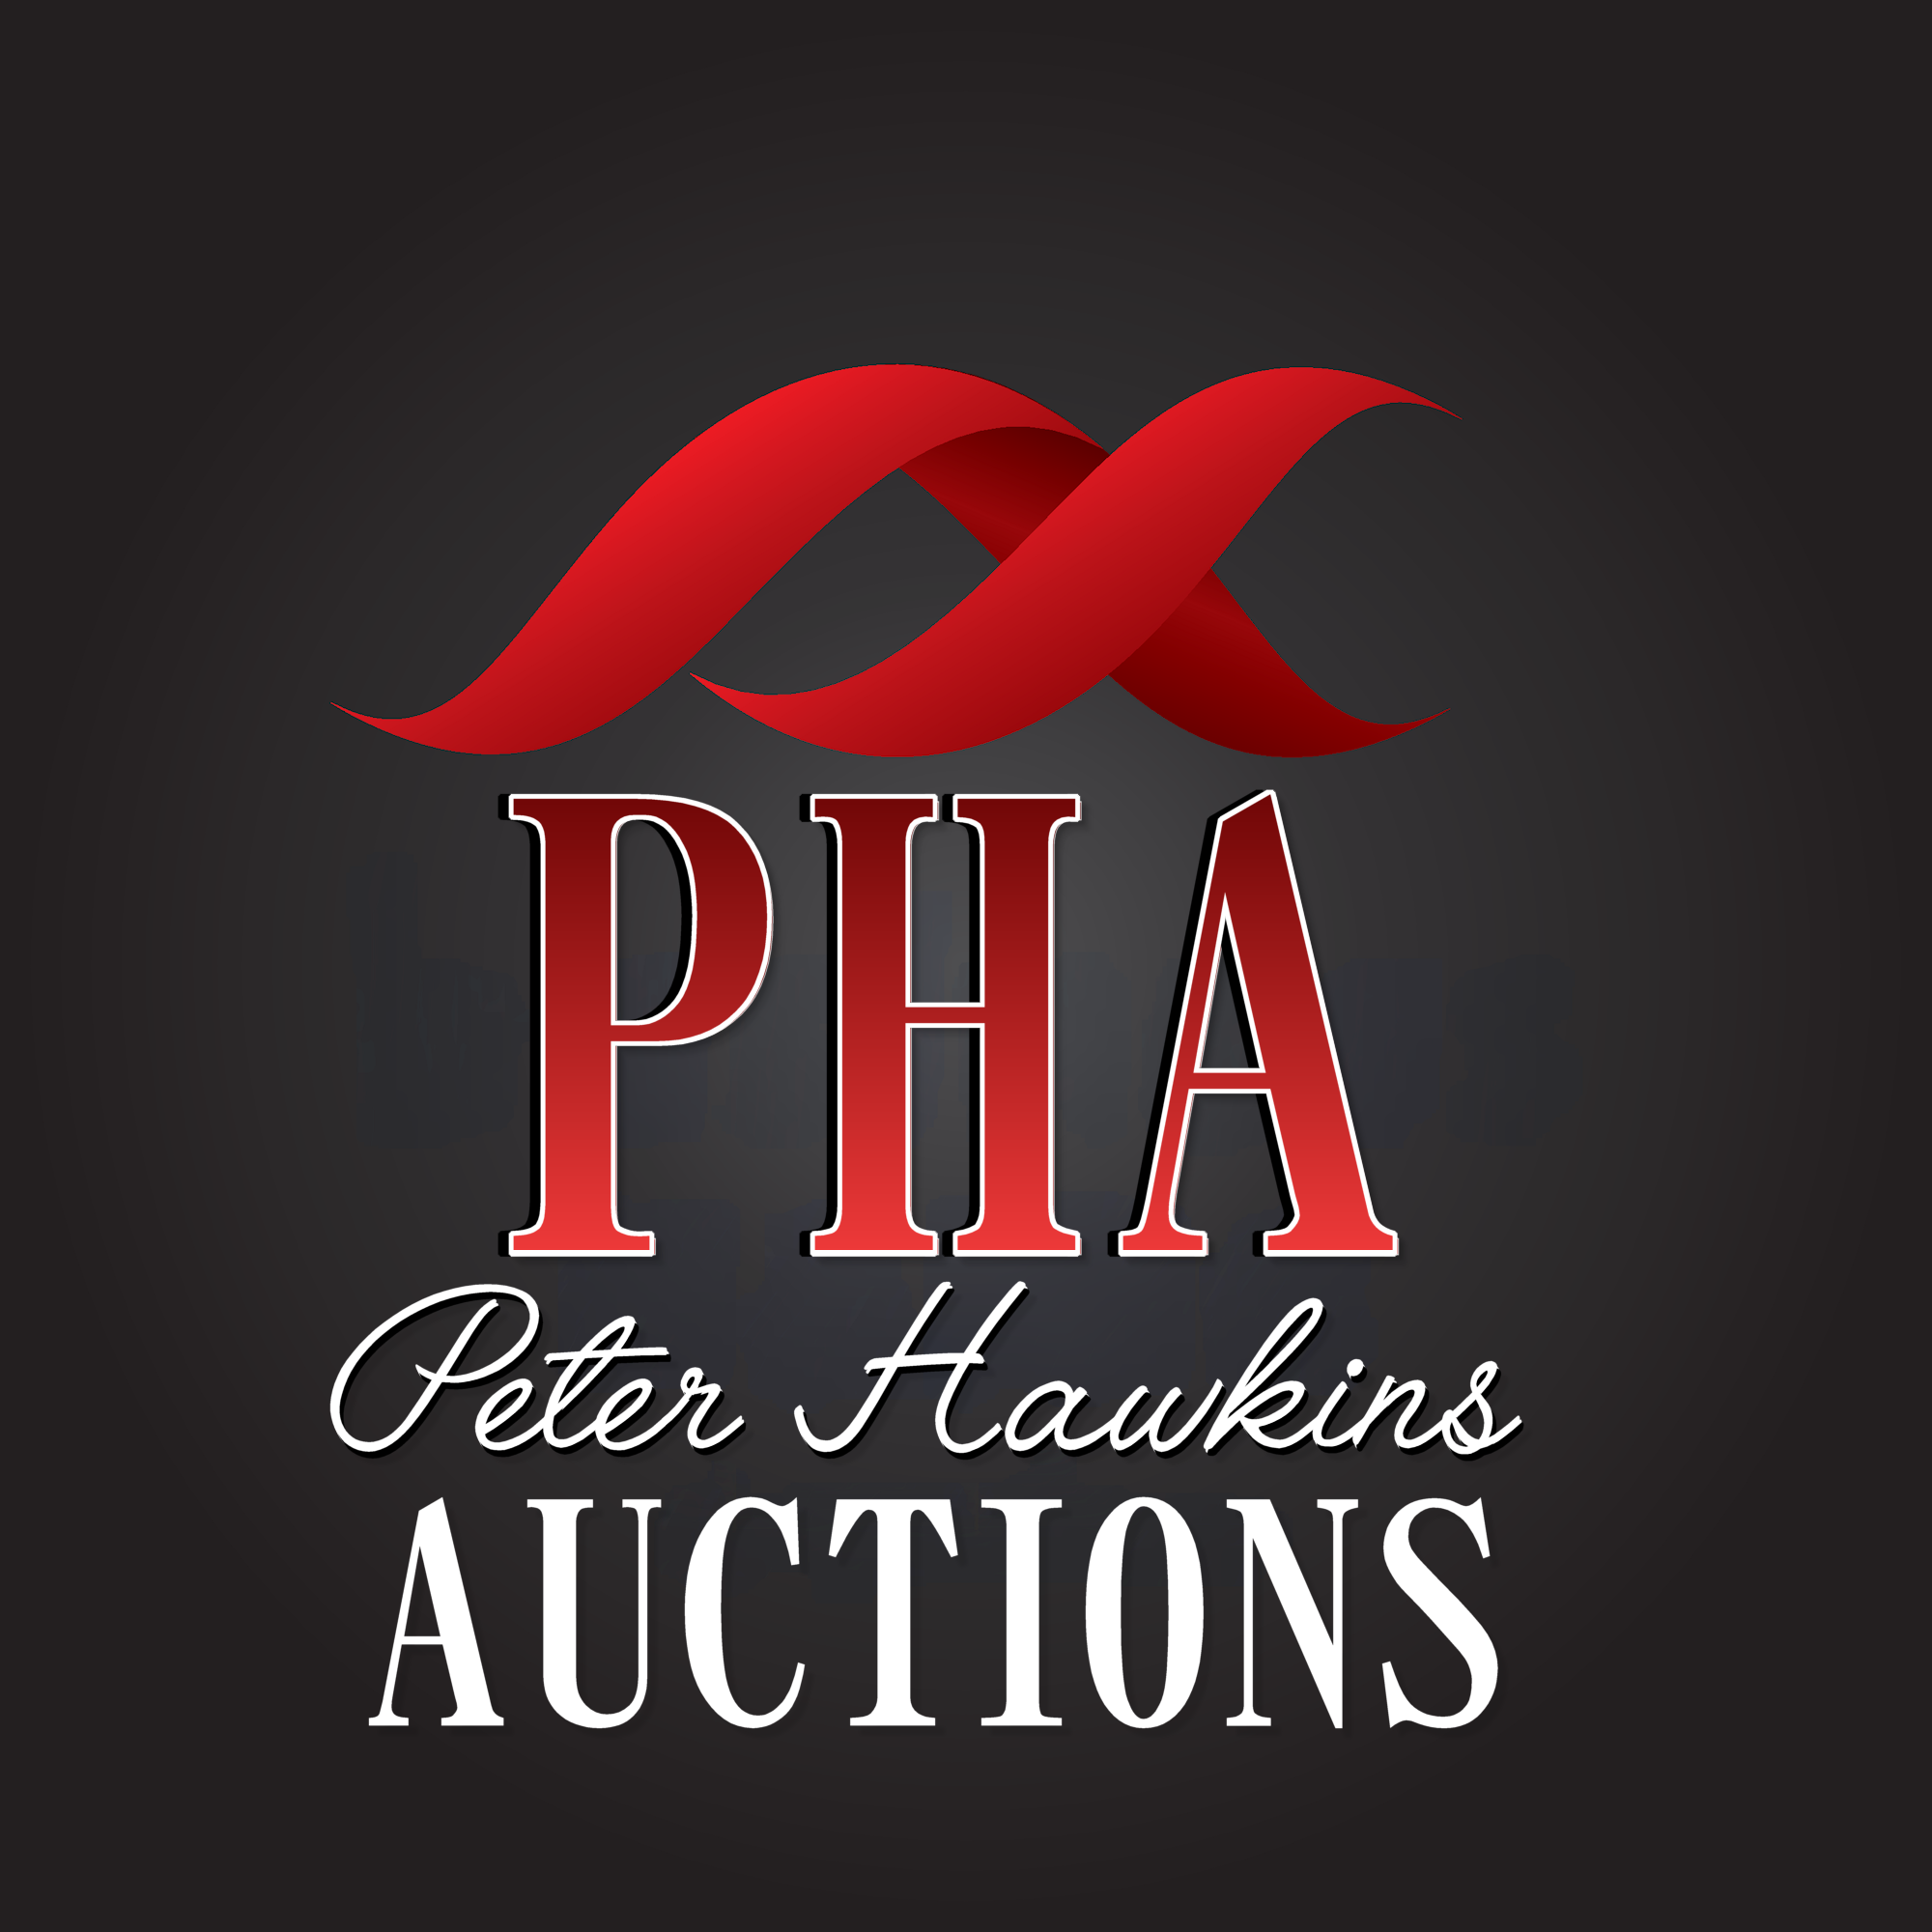 Peter Hawkins Auctions